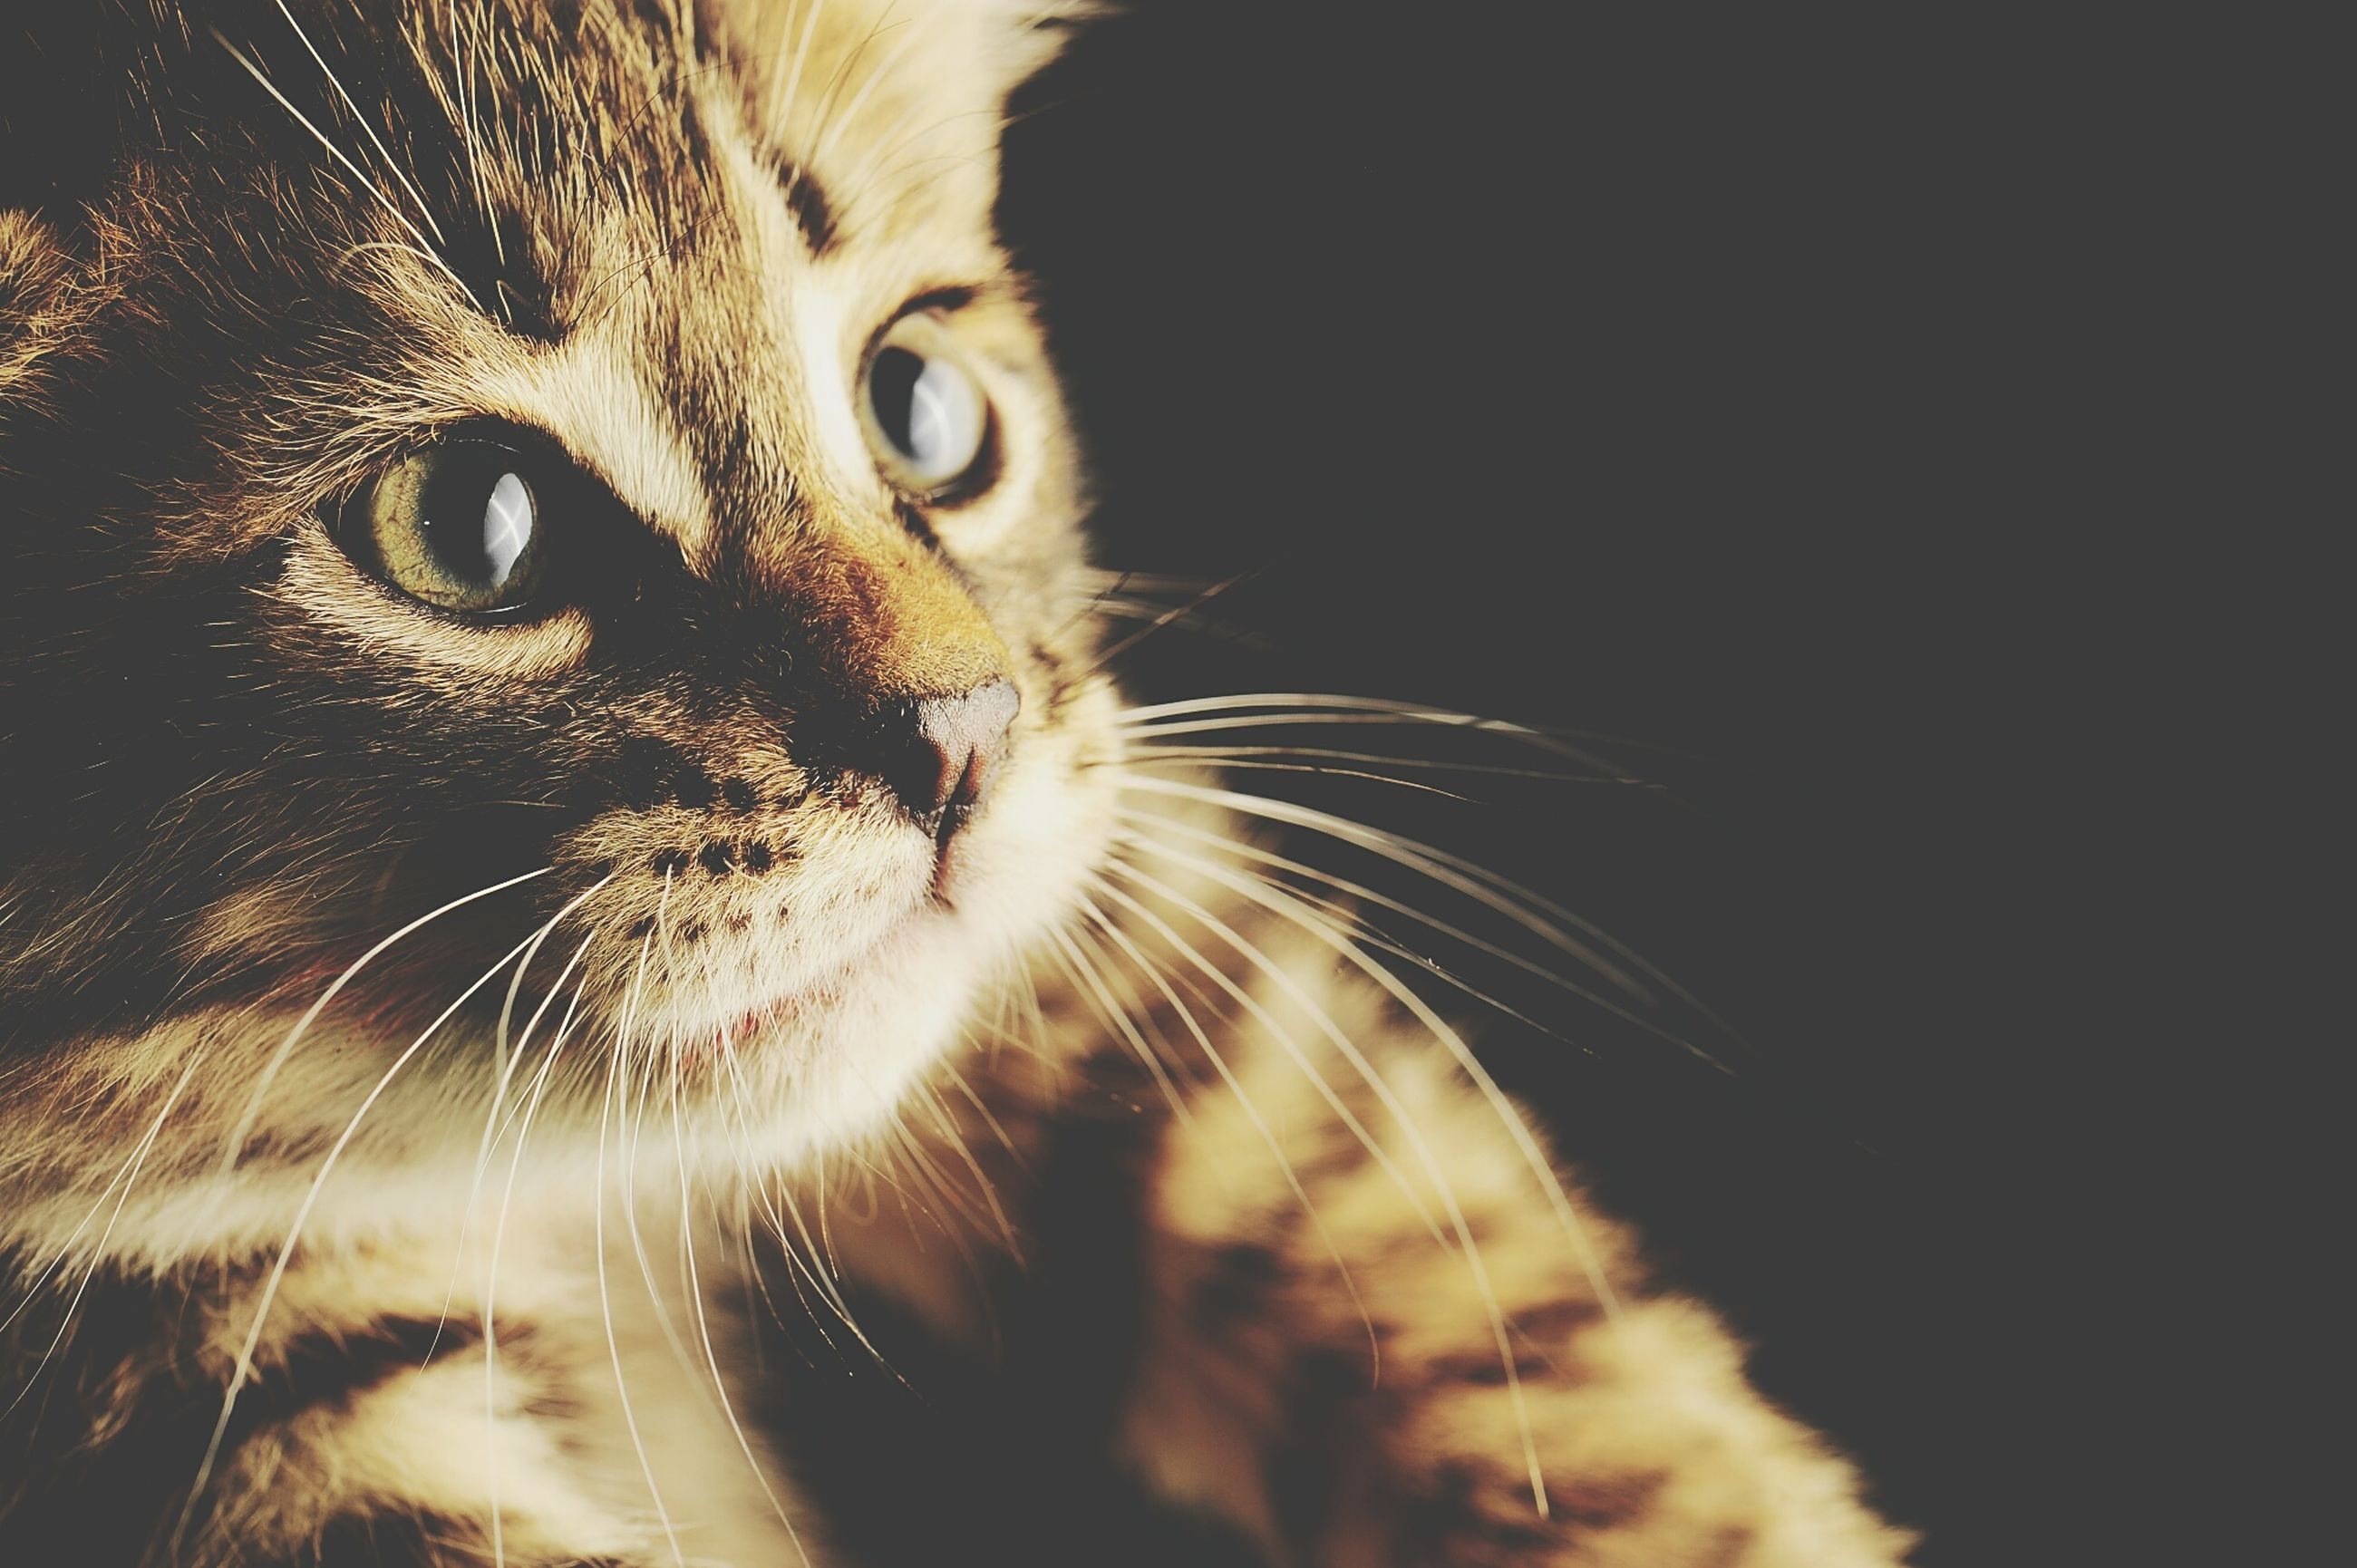 domestic cat, cat, one animal, animal themes, feline, pets, mammal, whisker, domestic animals, animal head, close-up, animal eye, portrait, indoors, animal body part, looking at camera, alertness, staring, no people